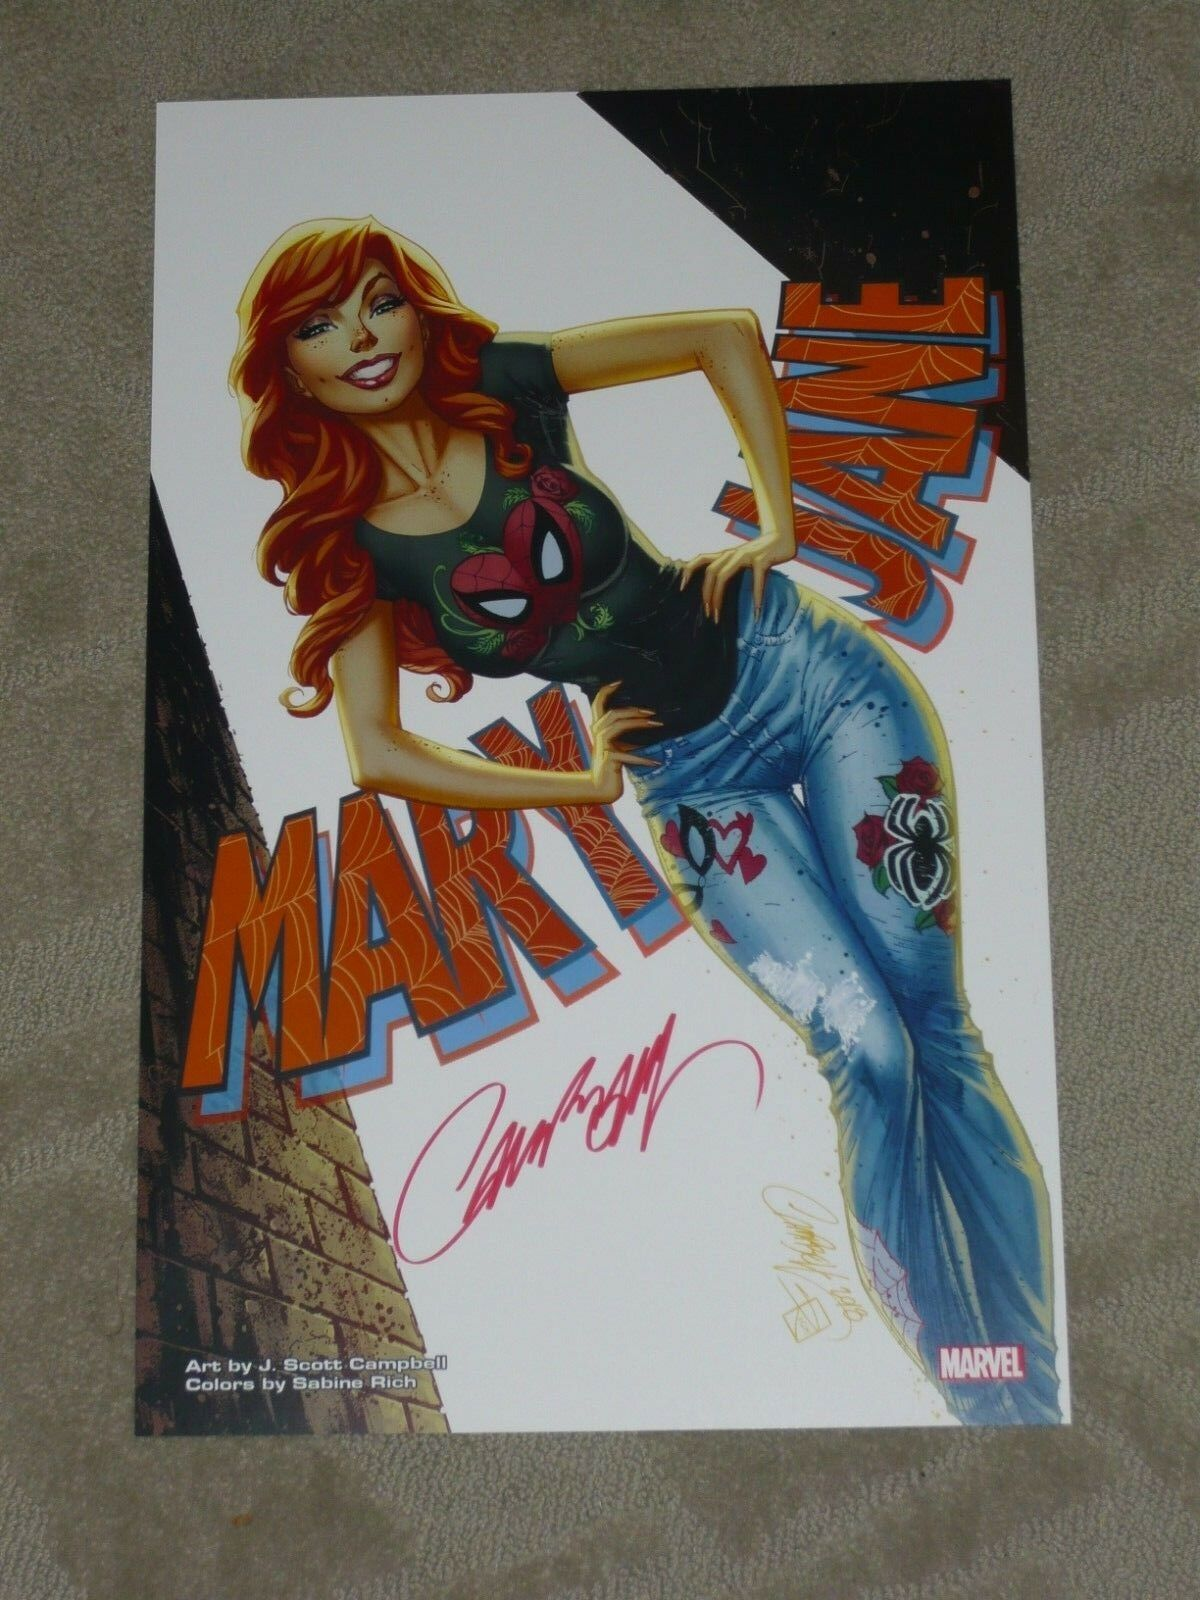 2018 NYCC SPIDERMAN /'S GWEN STACY ART PRINT SIGNED BY J SCOTT CAMPBELL 11x17